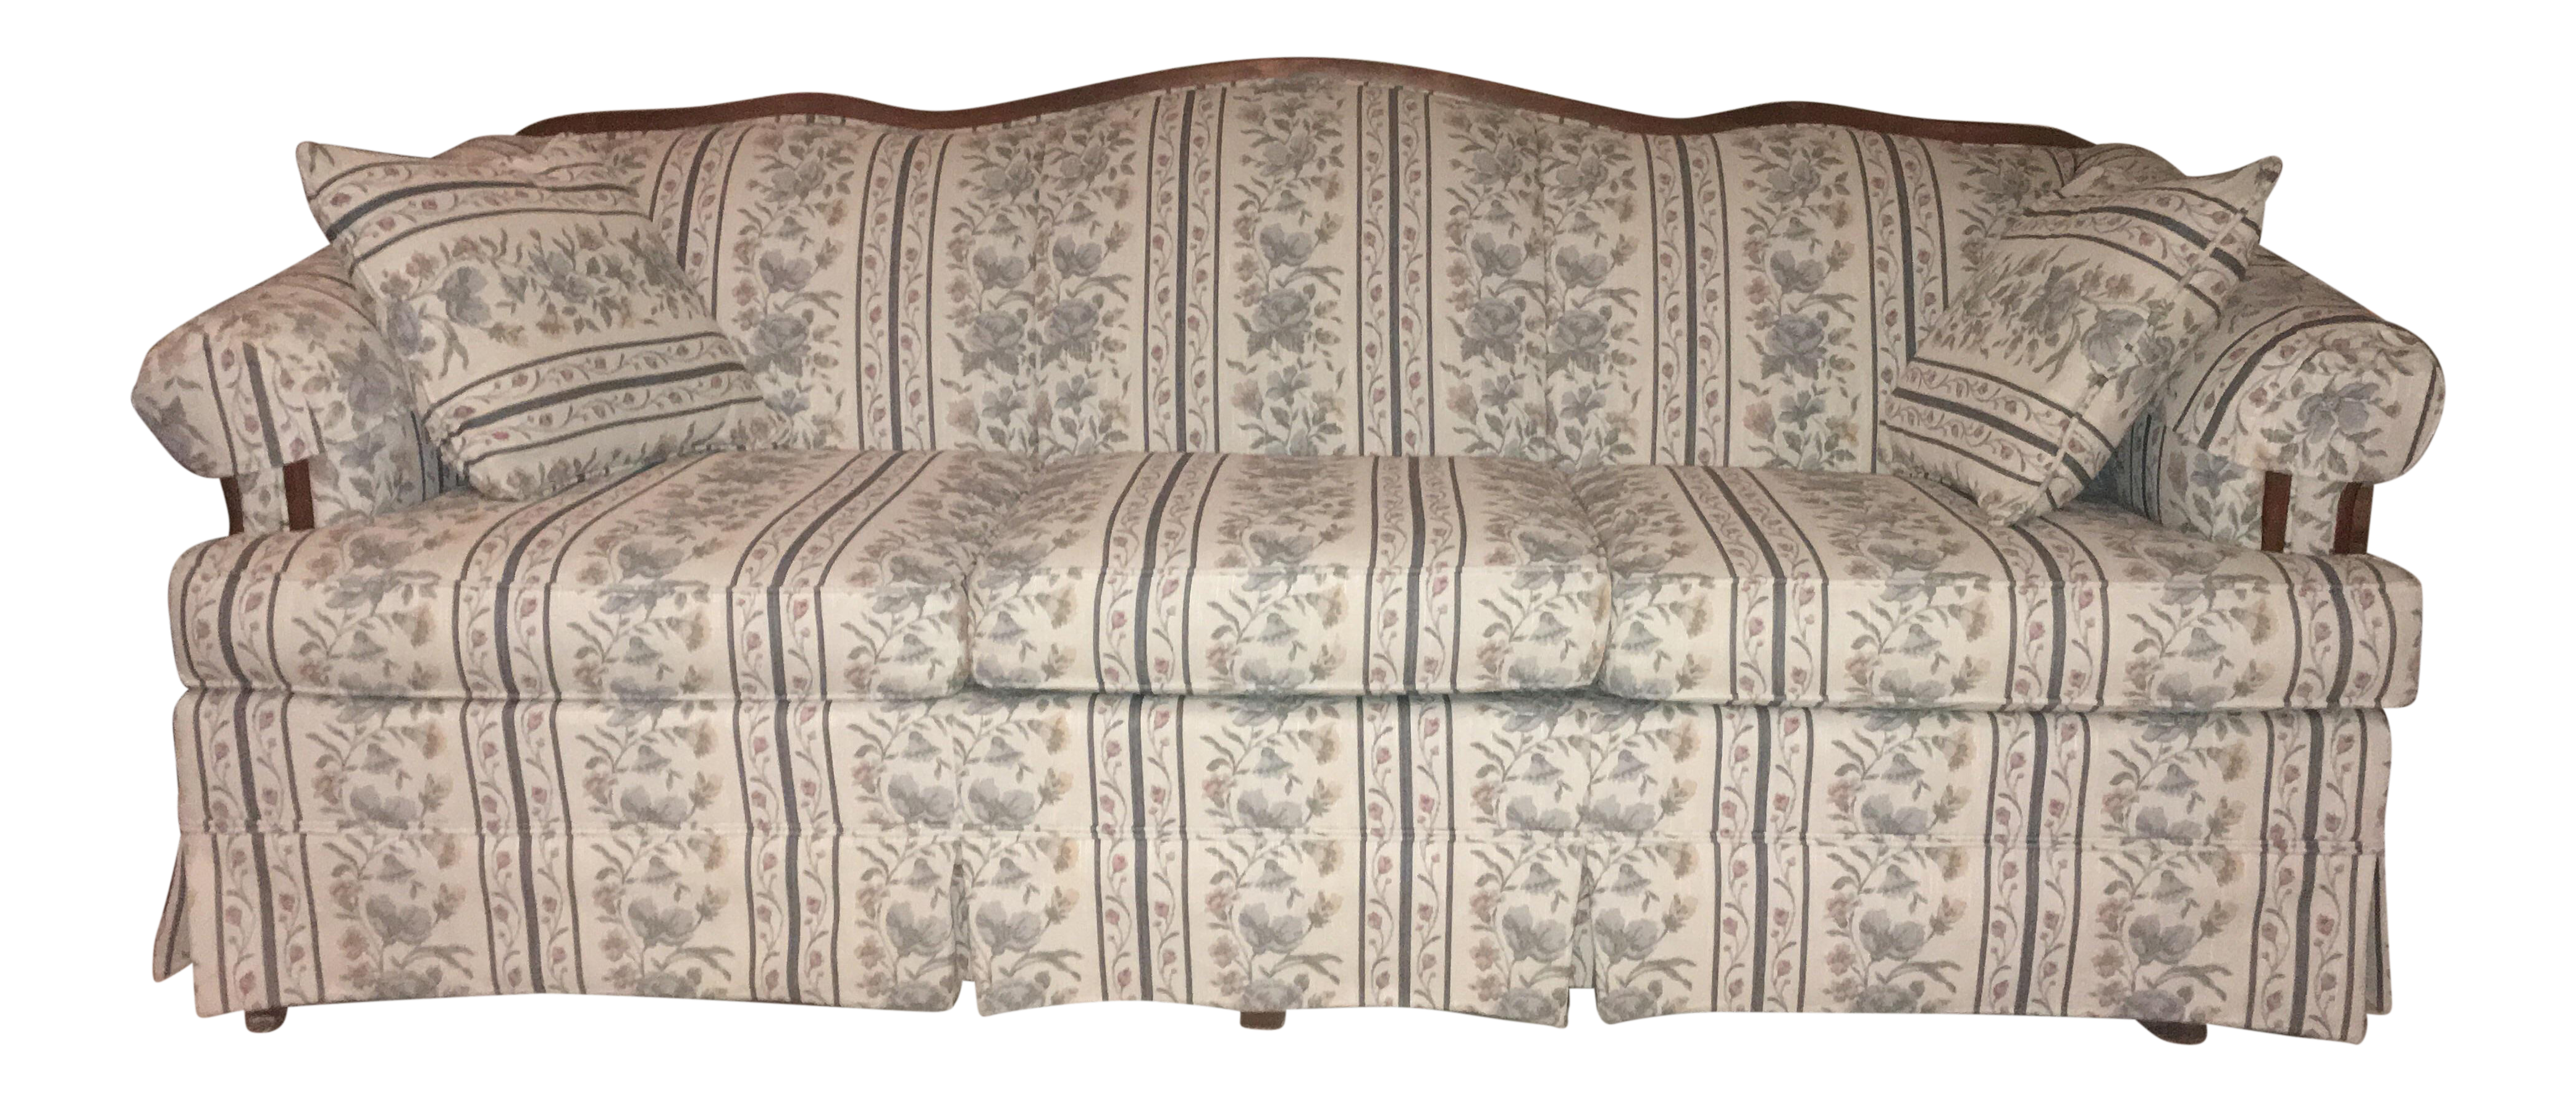 consignment furniture sofa delmarva products large striped medium floral broyhill img couch